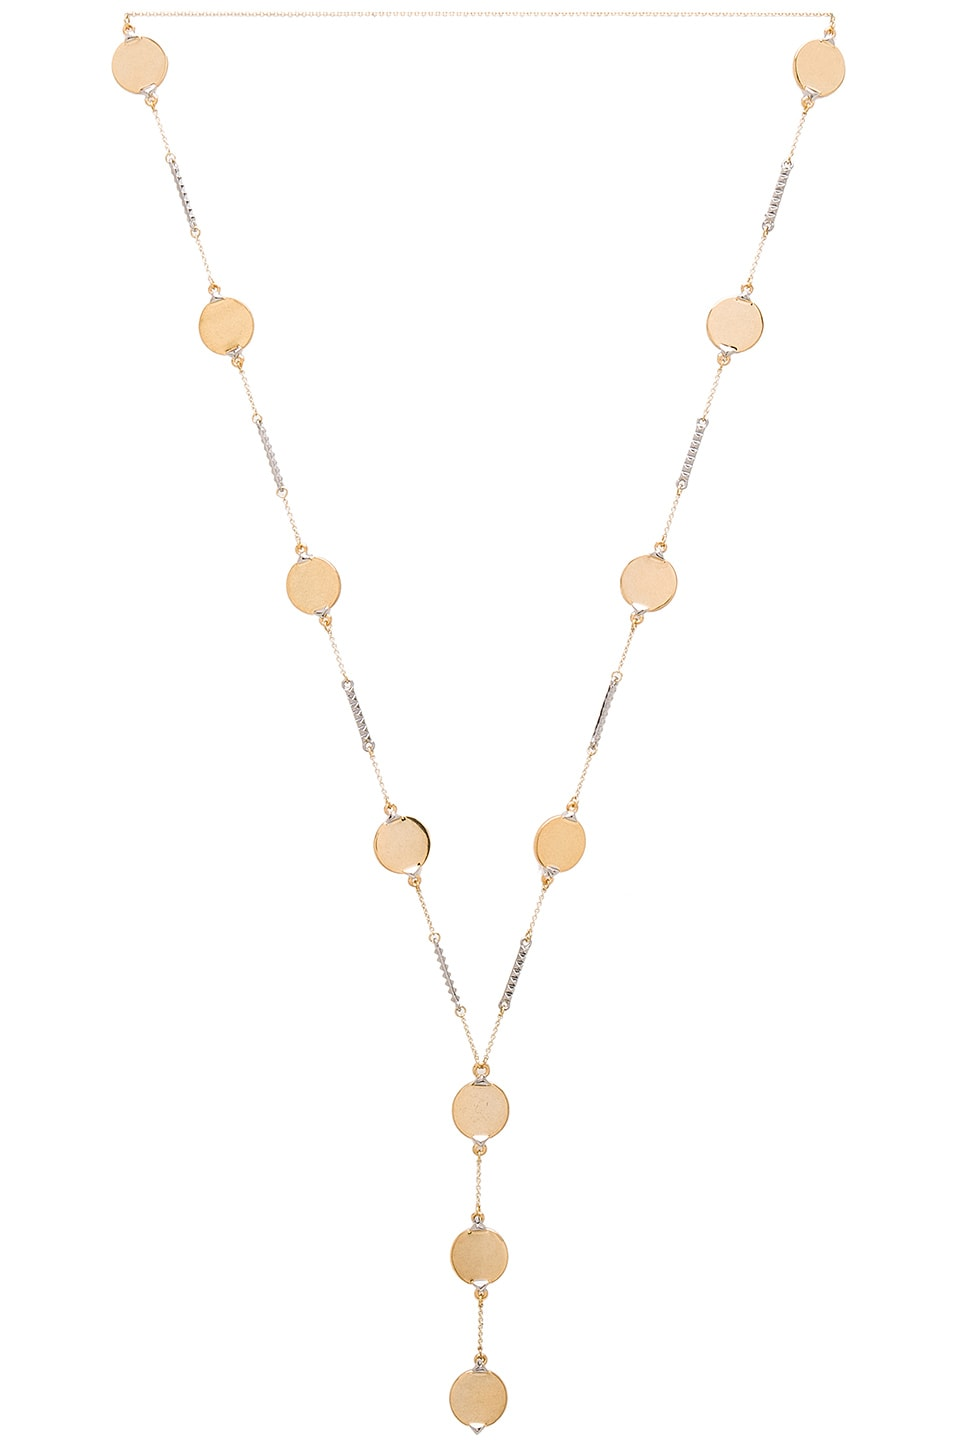 House of Harlow 1960 Nuri Y Necklace in Gold & Silver